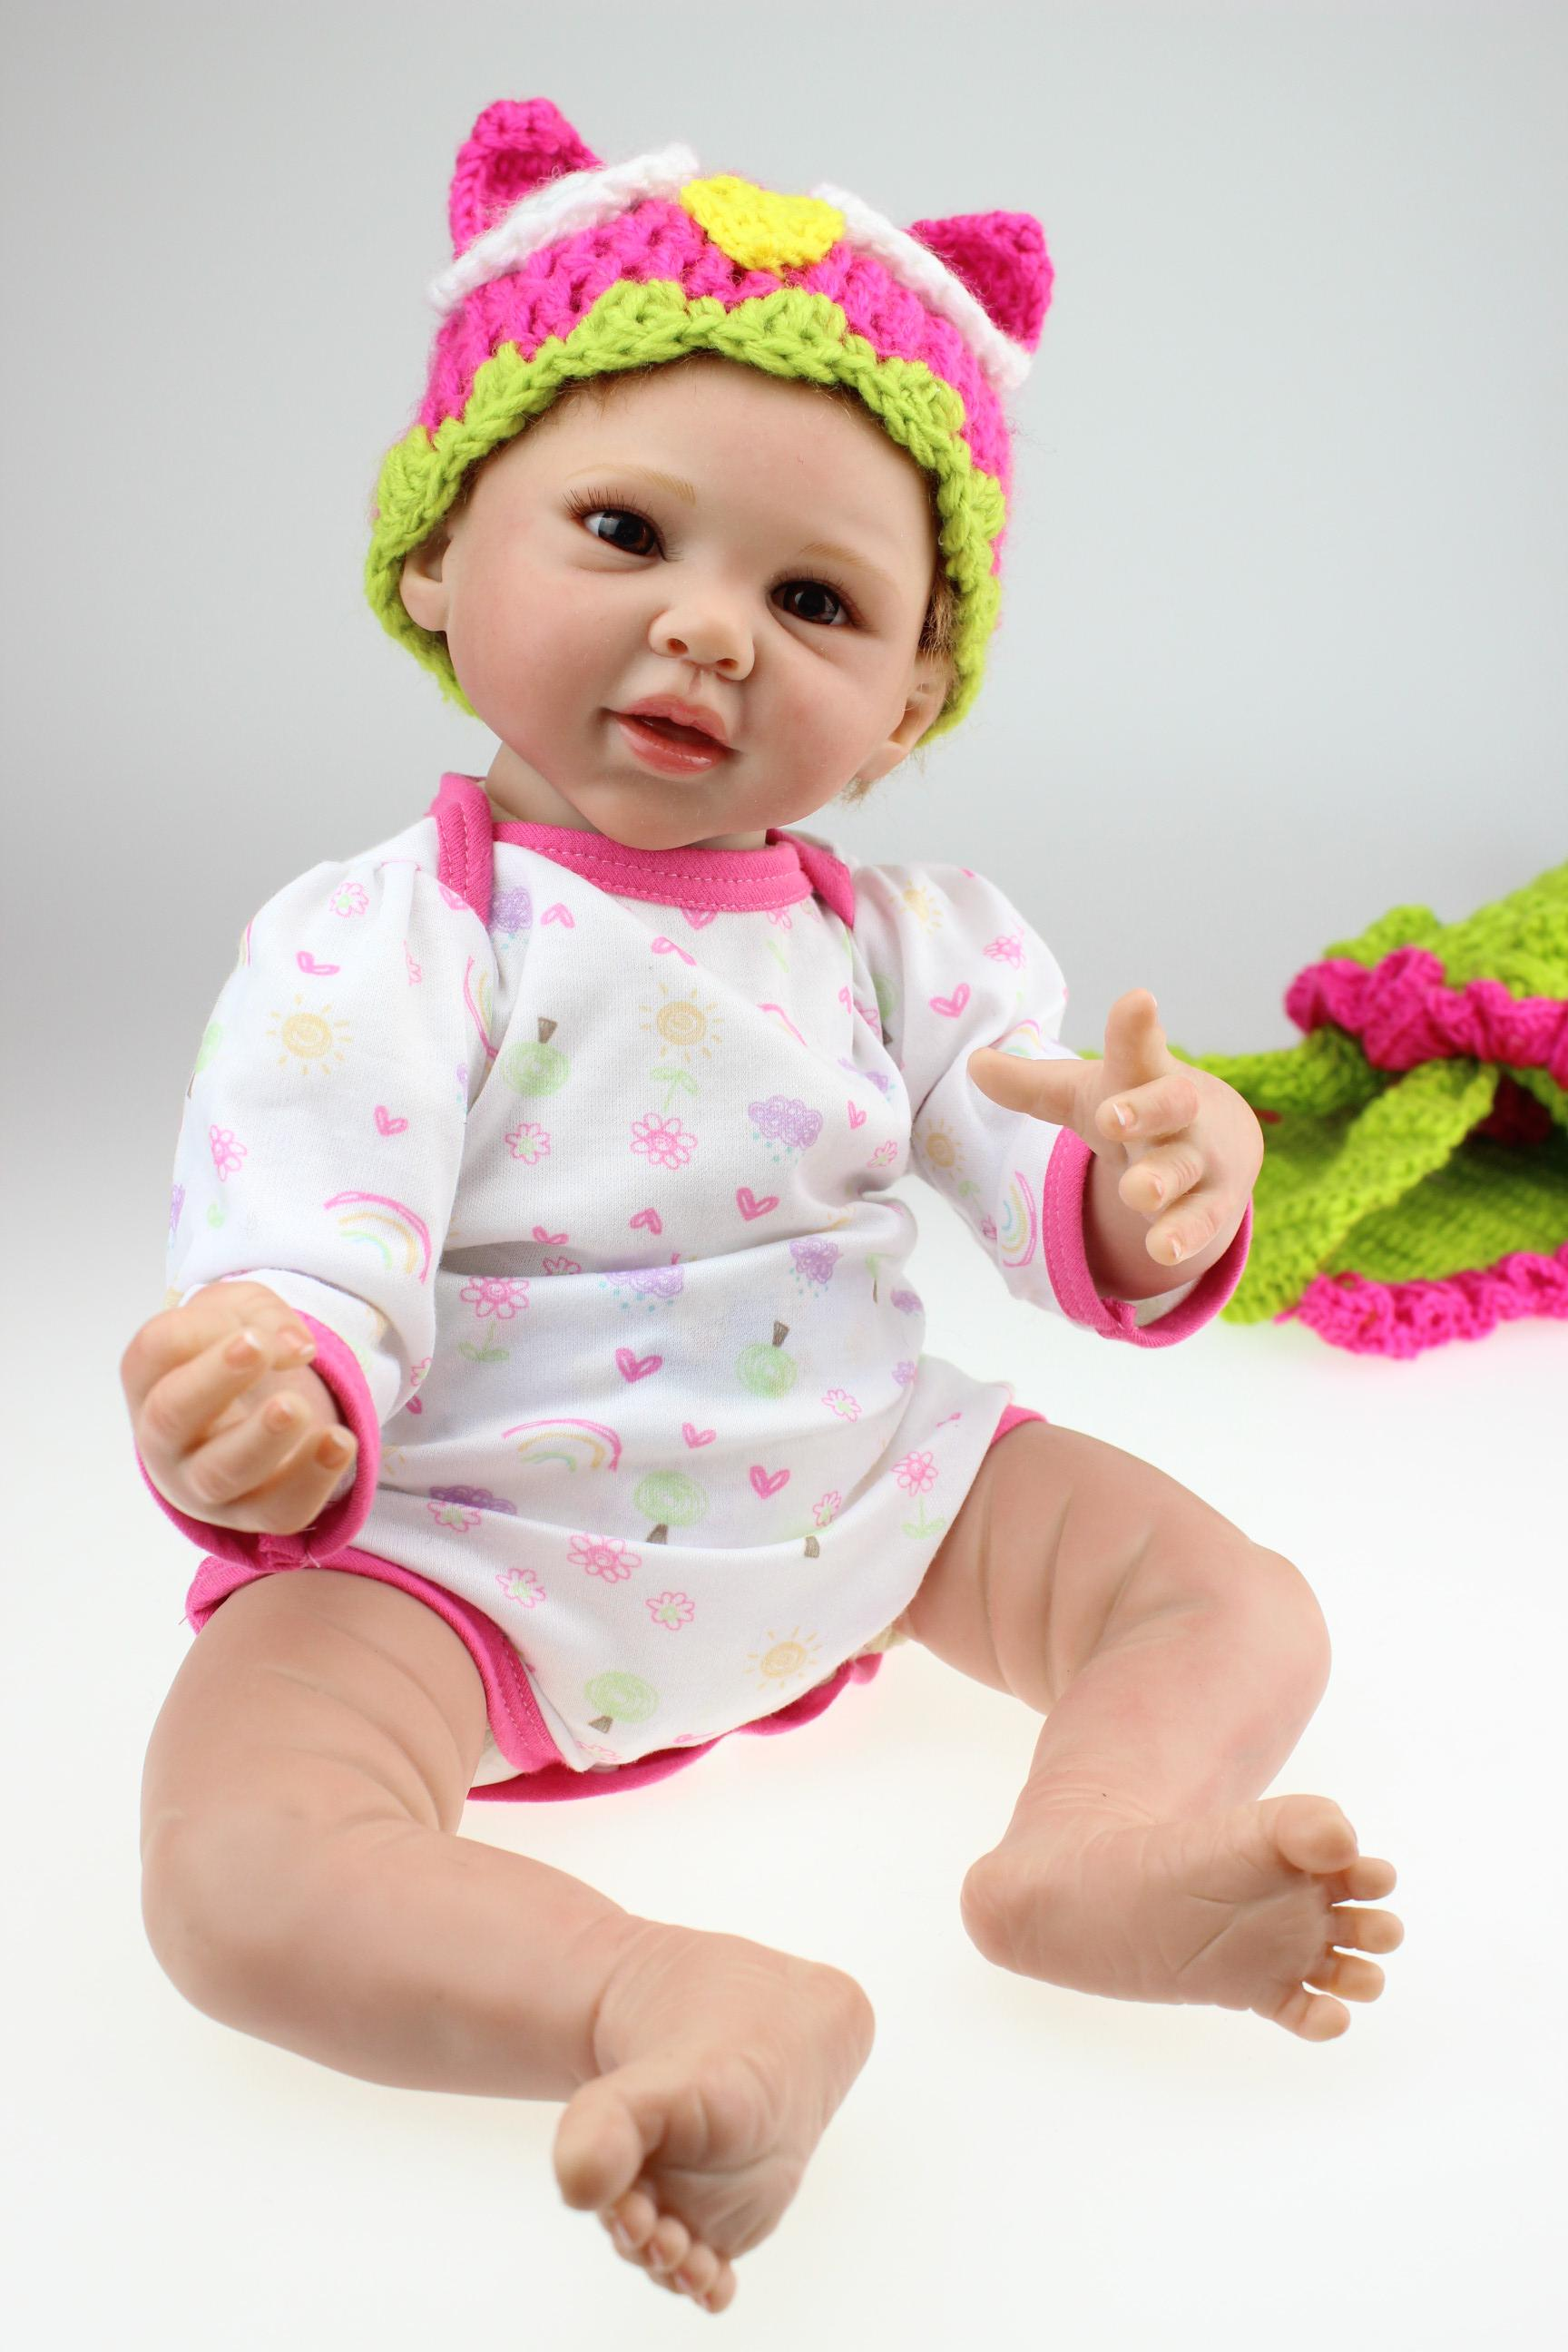 20 Inch Lovely Reborn Baby Doll Soft Silicone Vinyl Baby Doll In